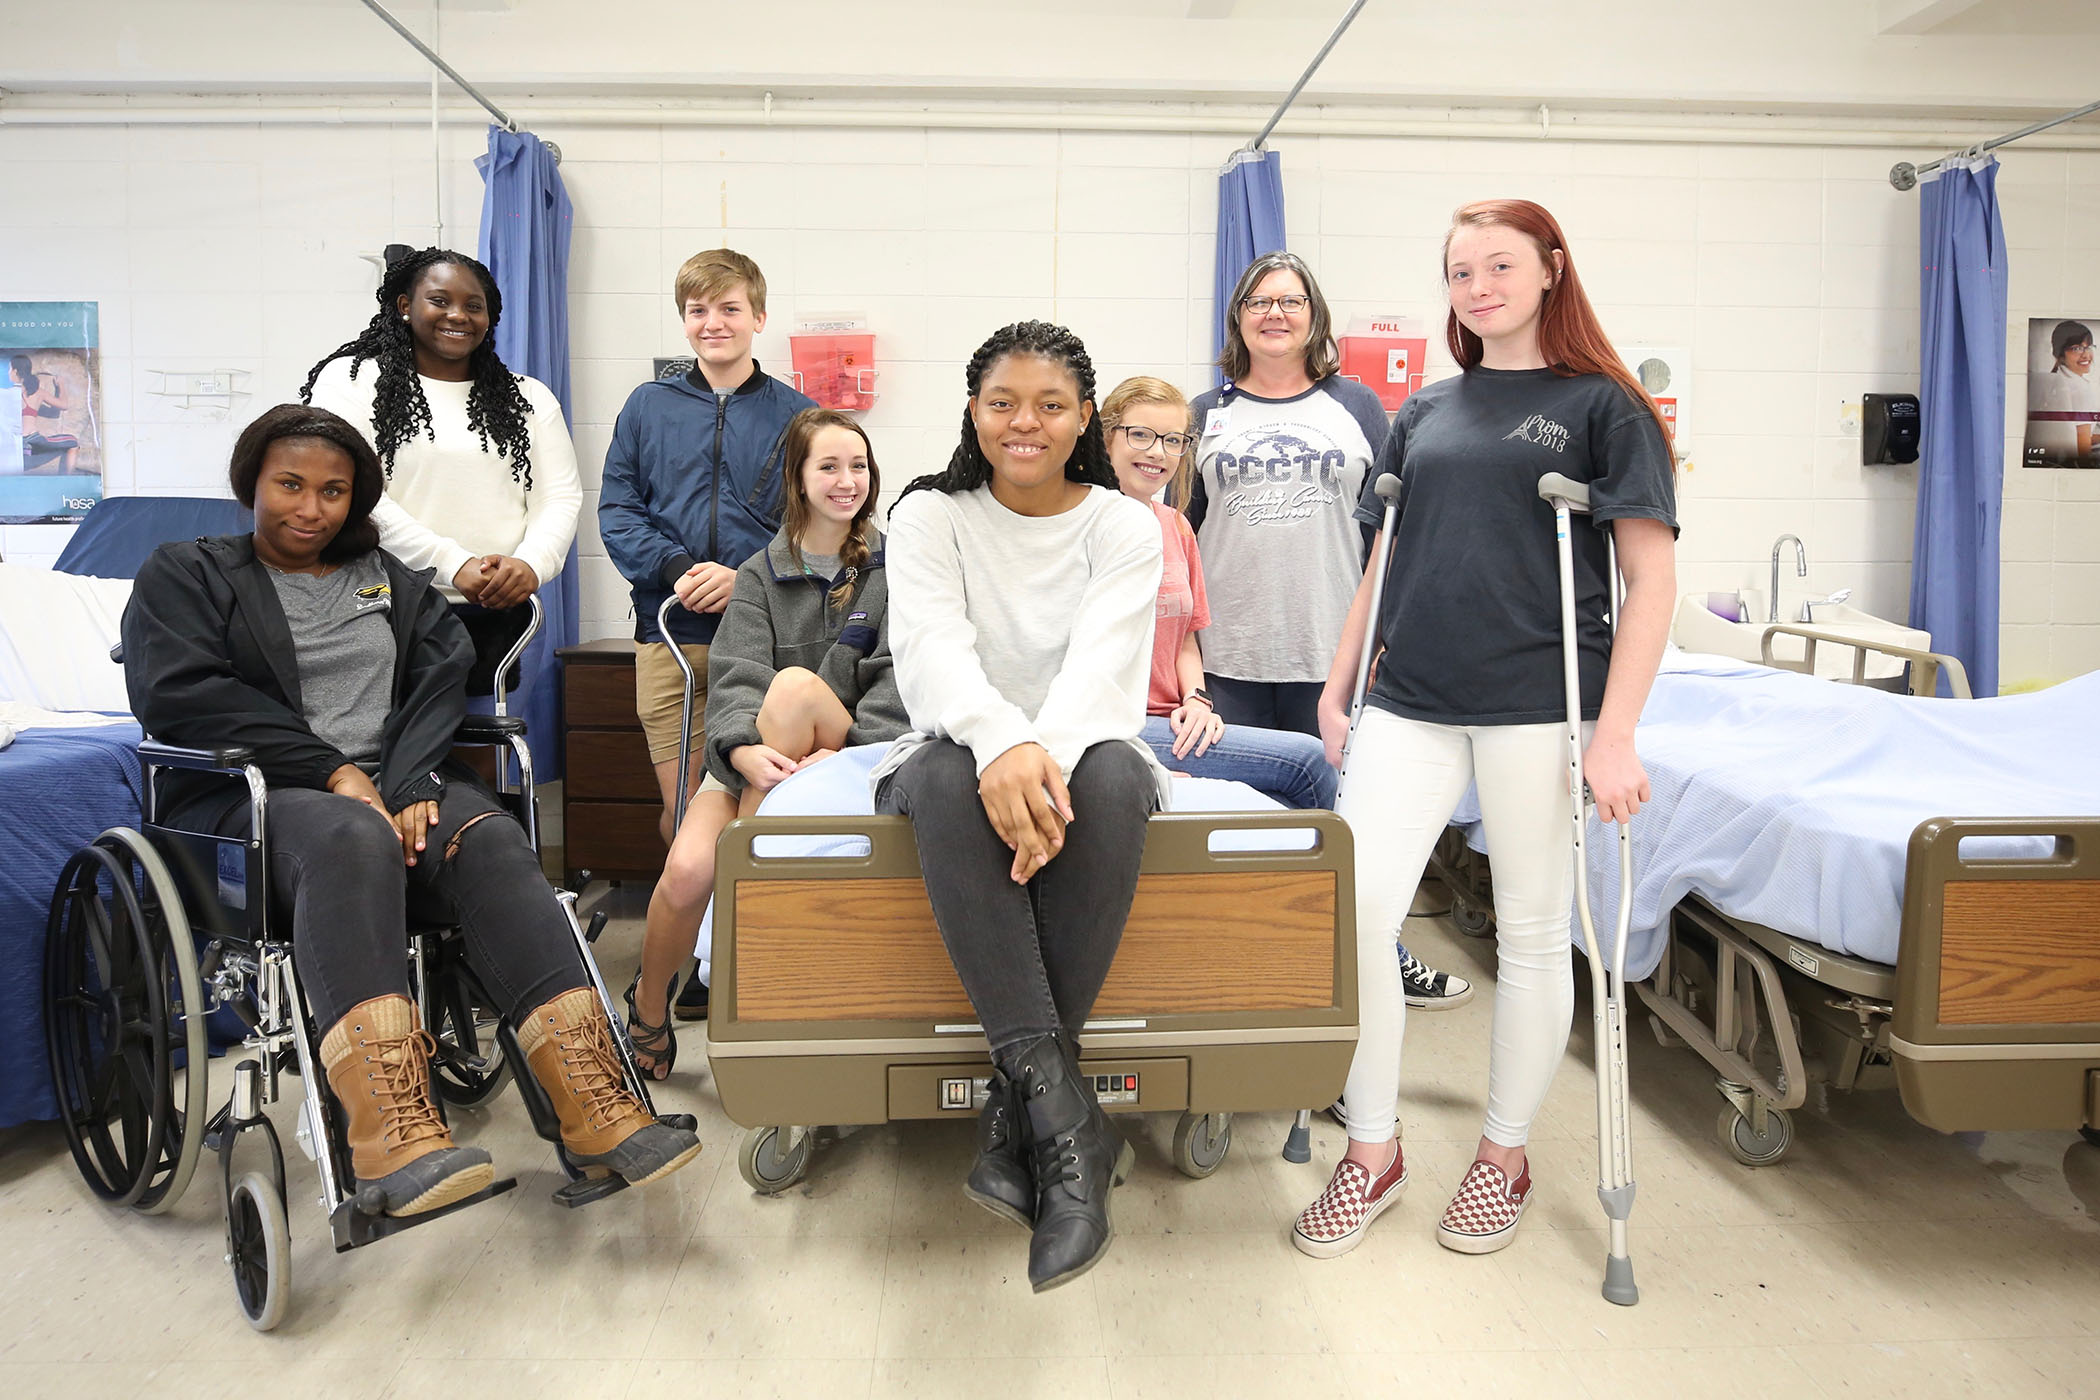 Jaureka poses with her peers and instructor in Health Science class.